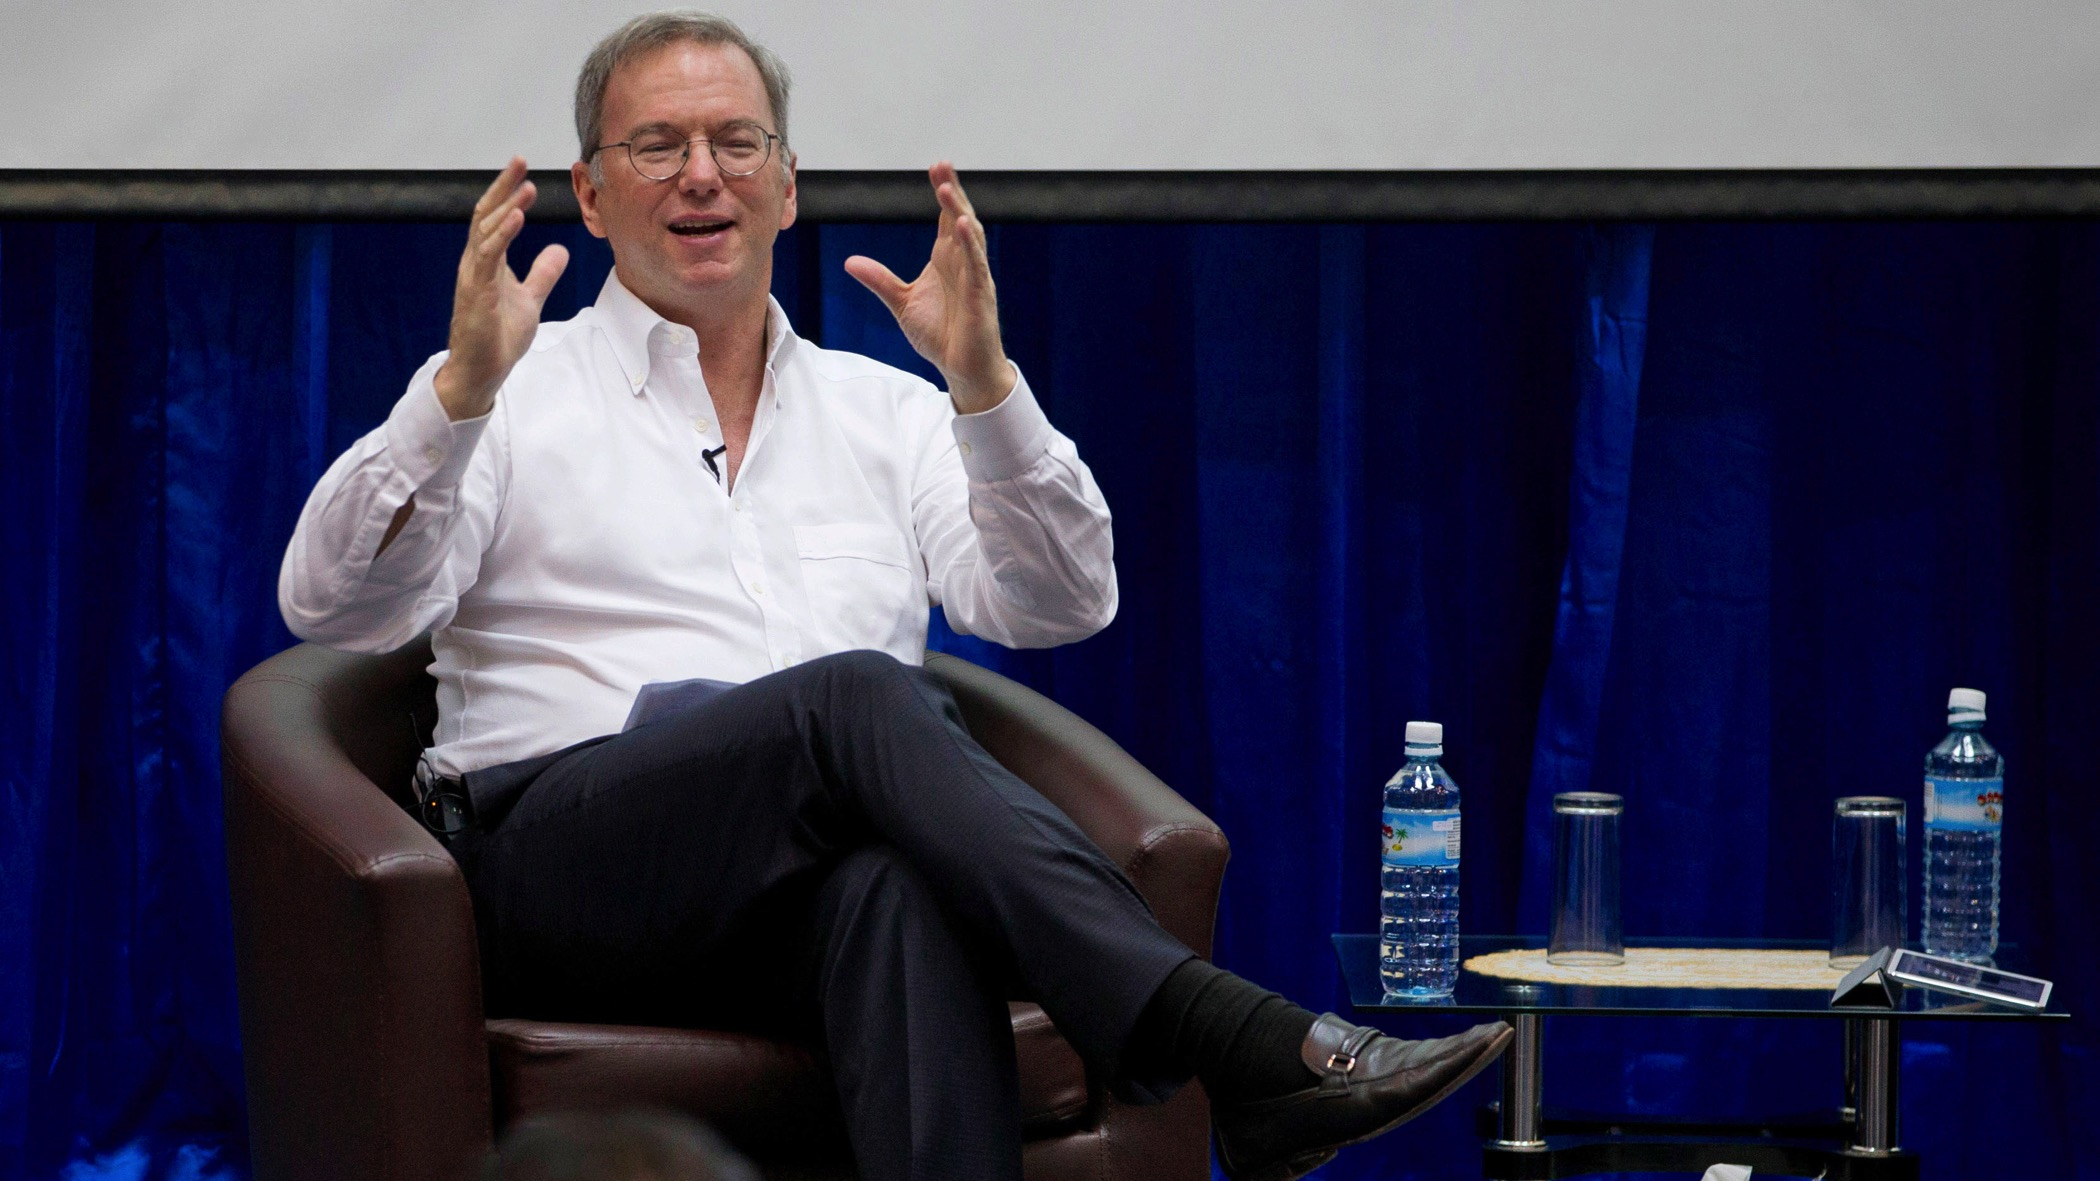 """Google executive chairman Eric Schmidt gestures during  an interactive session with group of students at a technical university in Yangon, Myanmar, Friday, Mar 22, 2013. Schmidt on Friday urged Myanmar's government to allow the private sector to develop the country's woeful telecommunications infrastructure, emphasizing the importance of competition and free speech. Schmidt's visit to Myanmar comes after trips to Libya, Afghanistan, and North Korea, which he said was a """"truly wacky place."""" (AP Photo/Gemunu Amarasinghe)"""